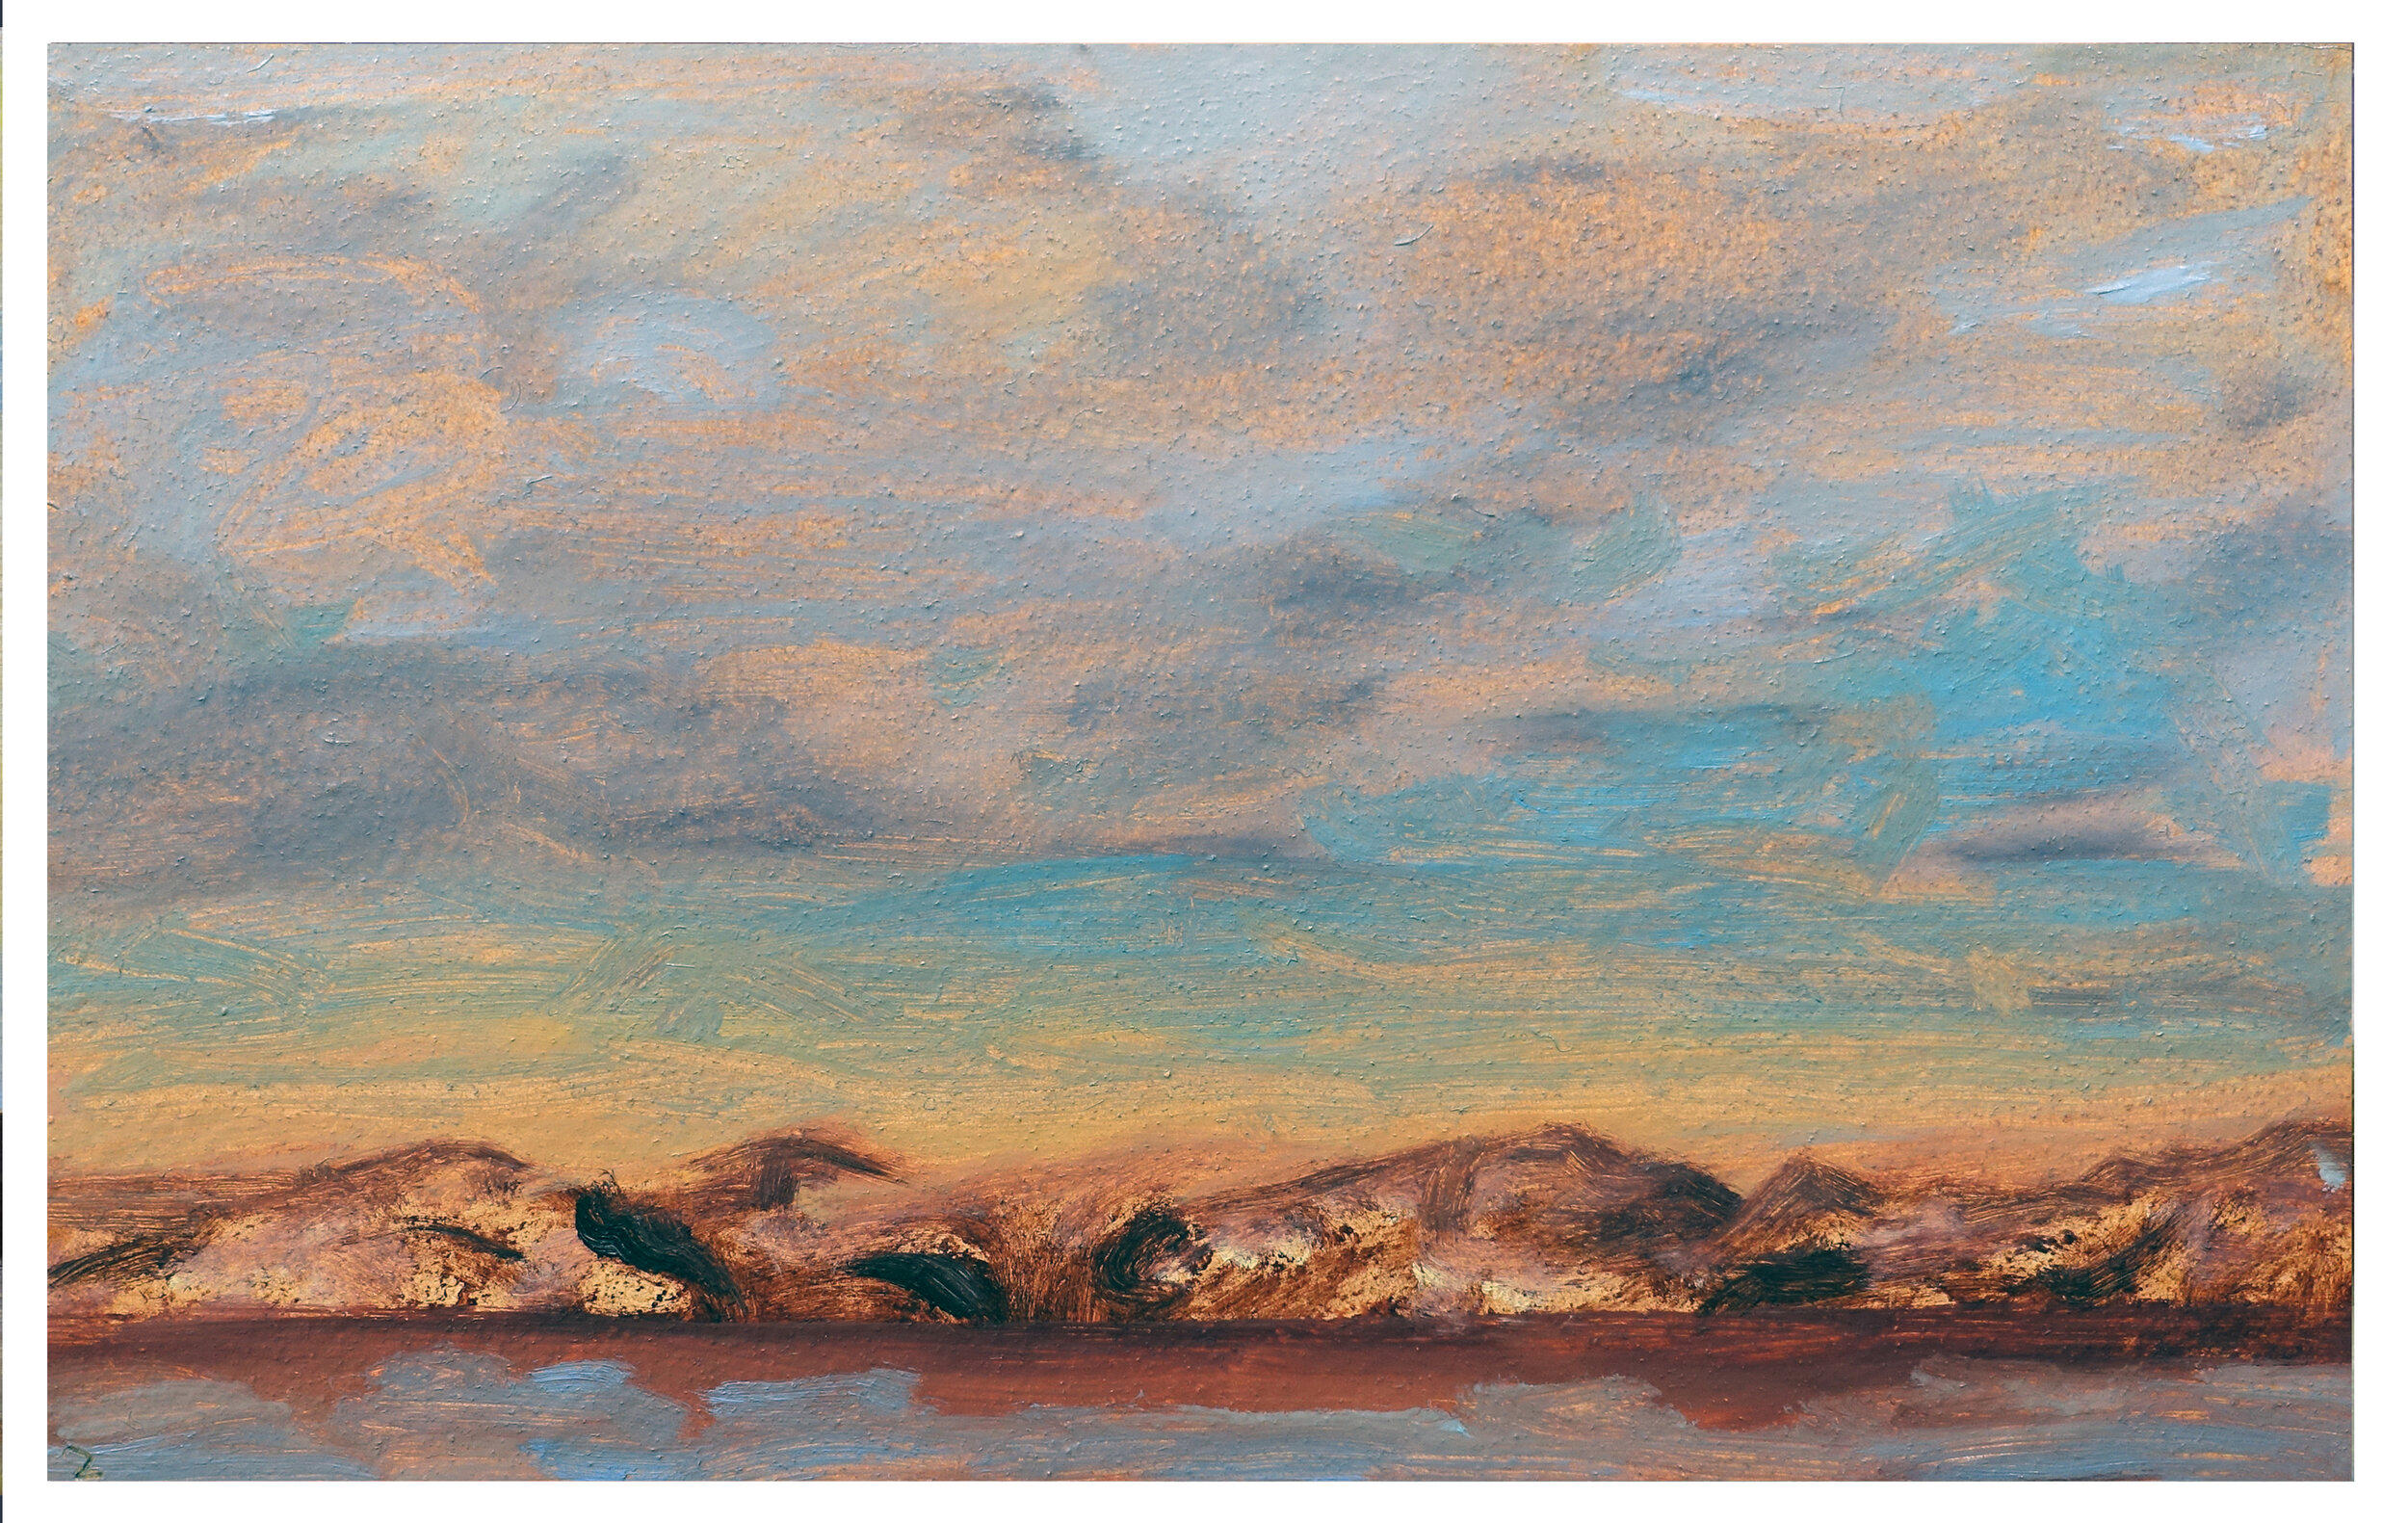 "River Hills and Sky    Oil on Paper (Arches 156#) 7"" x 11"" (17.78cm x 27.94cm)  © 2019"